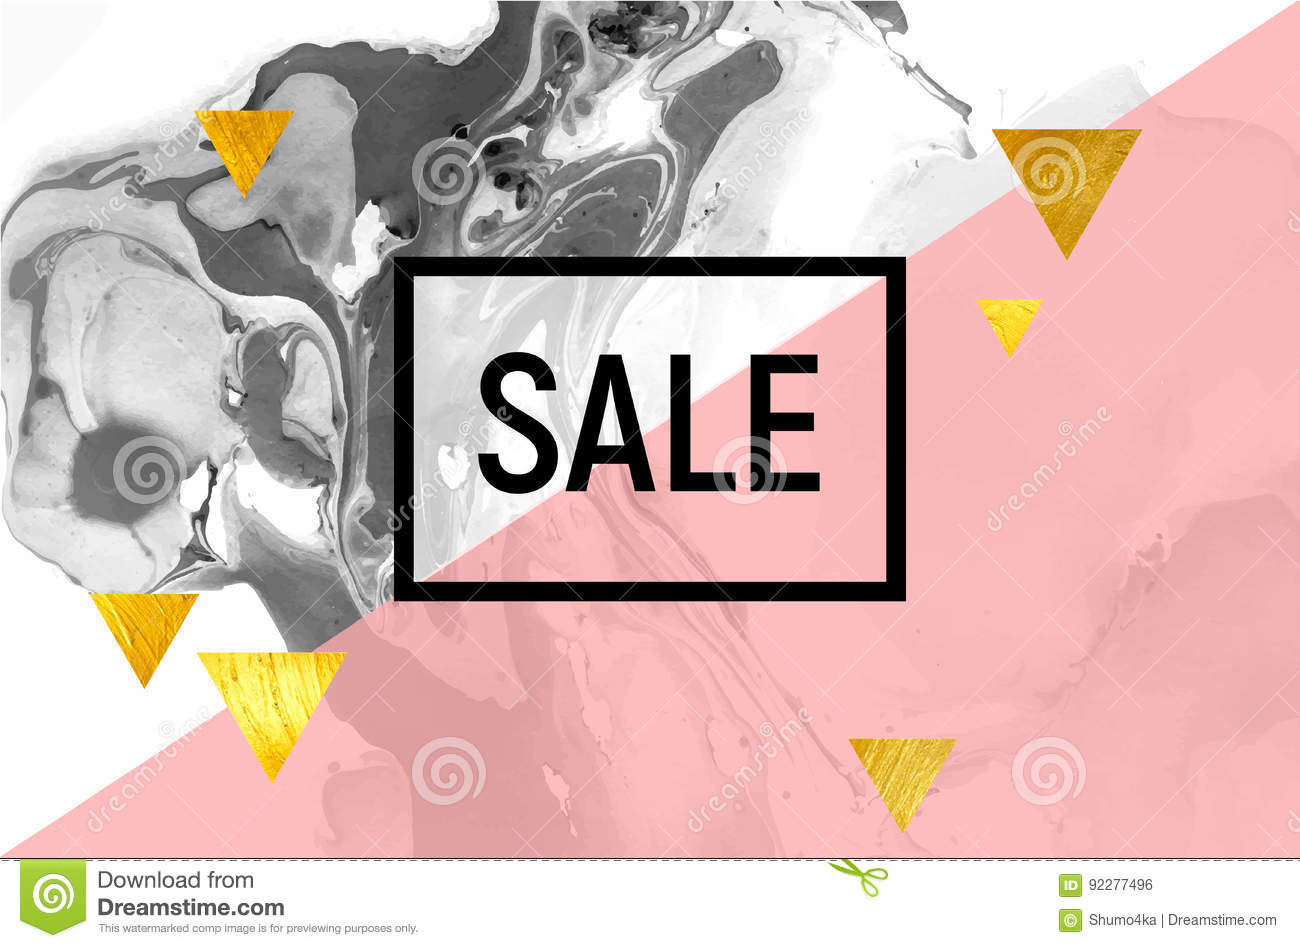 Sale Poster Black And White Marble Pink Stripe Gold Foil Triangles Stock Vector Illustration Of Beautiful Design 92277496